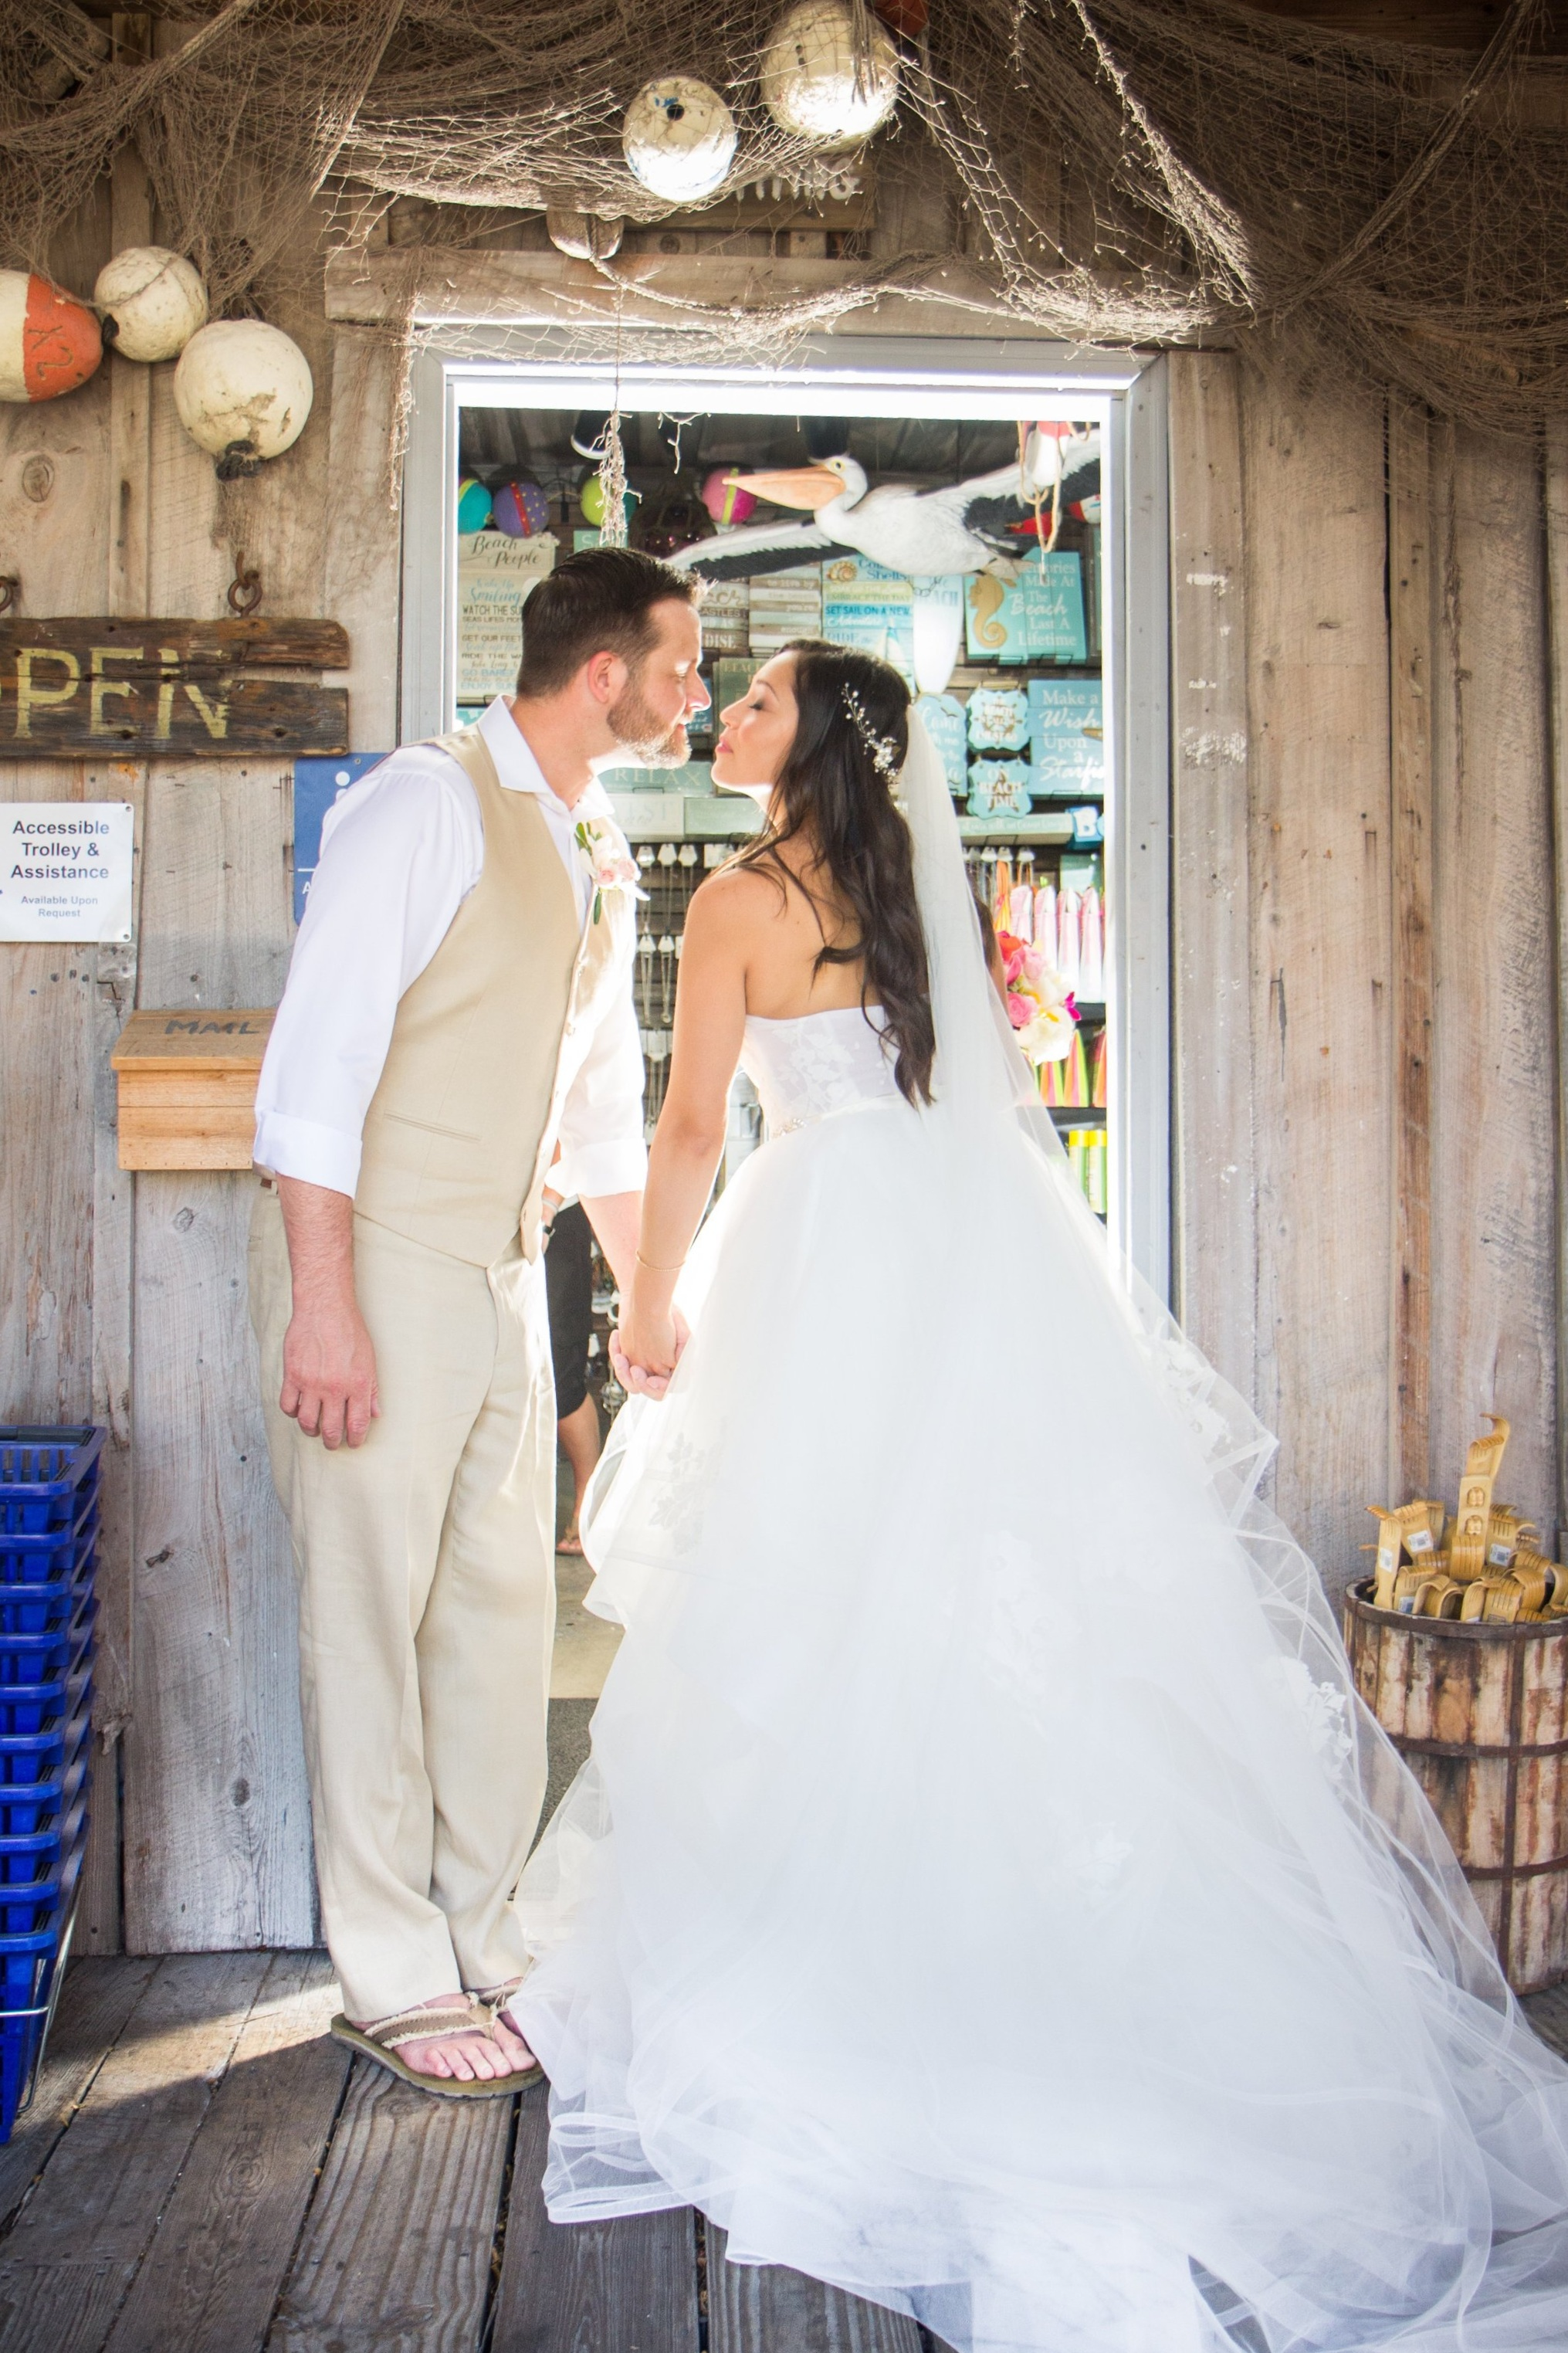 Kissing in the doorway at Macs Sea Garden in Key West